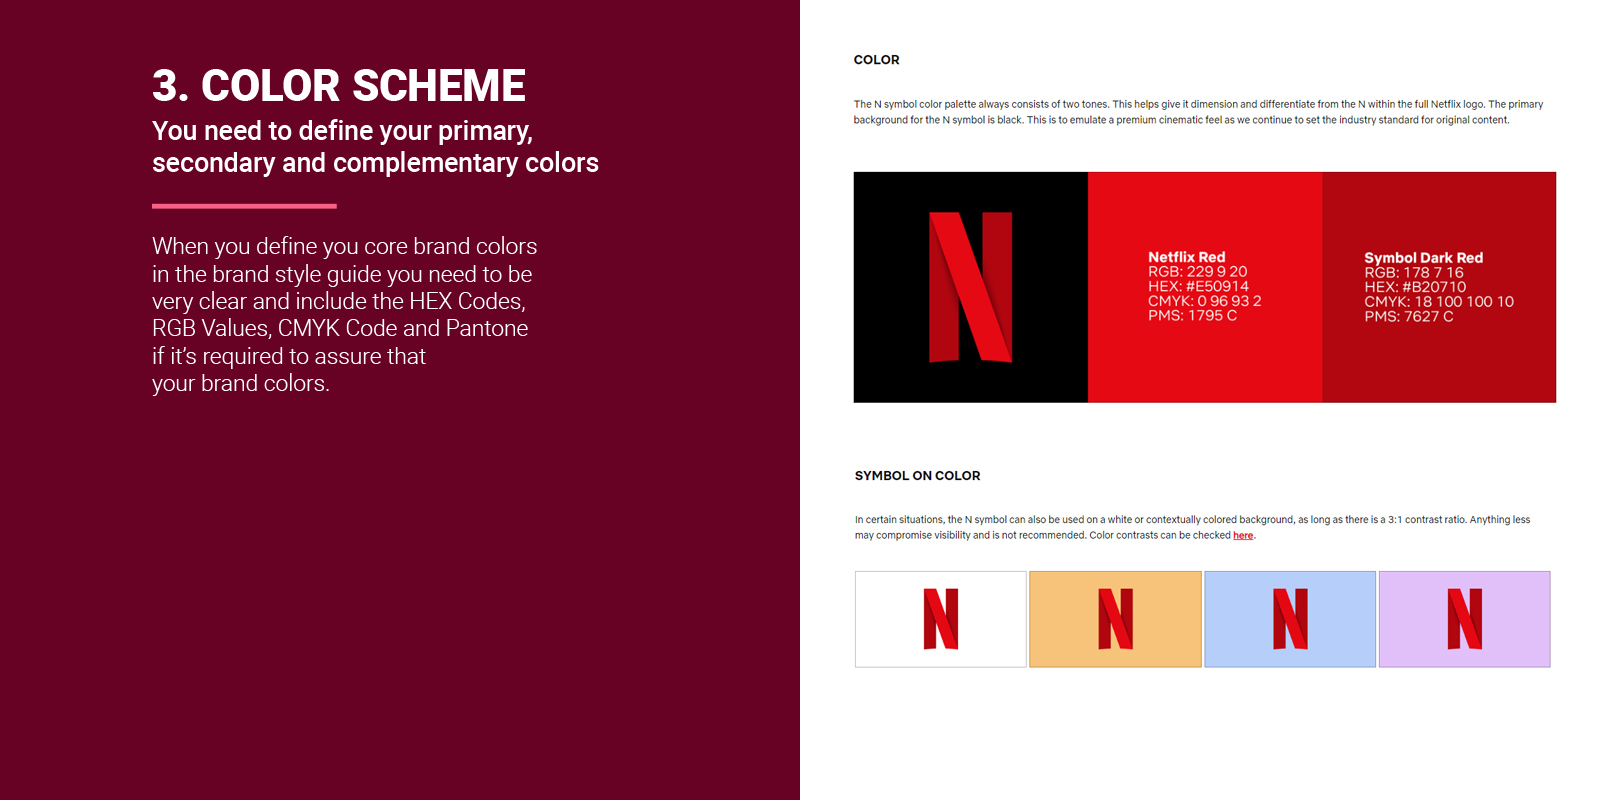 Color Scheme in Brand Style Guide Example